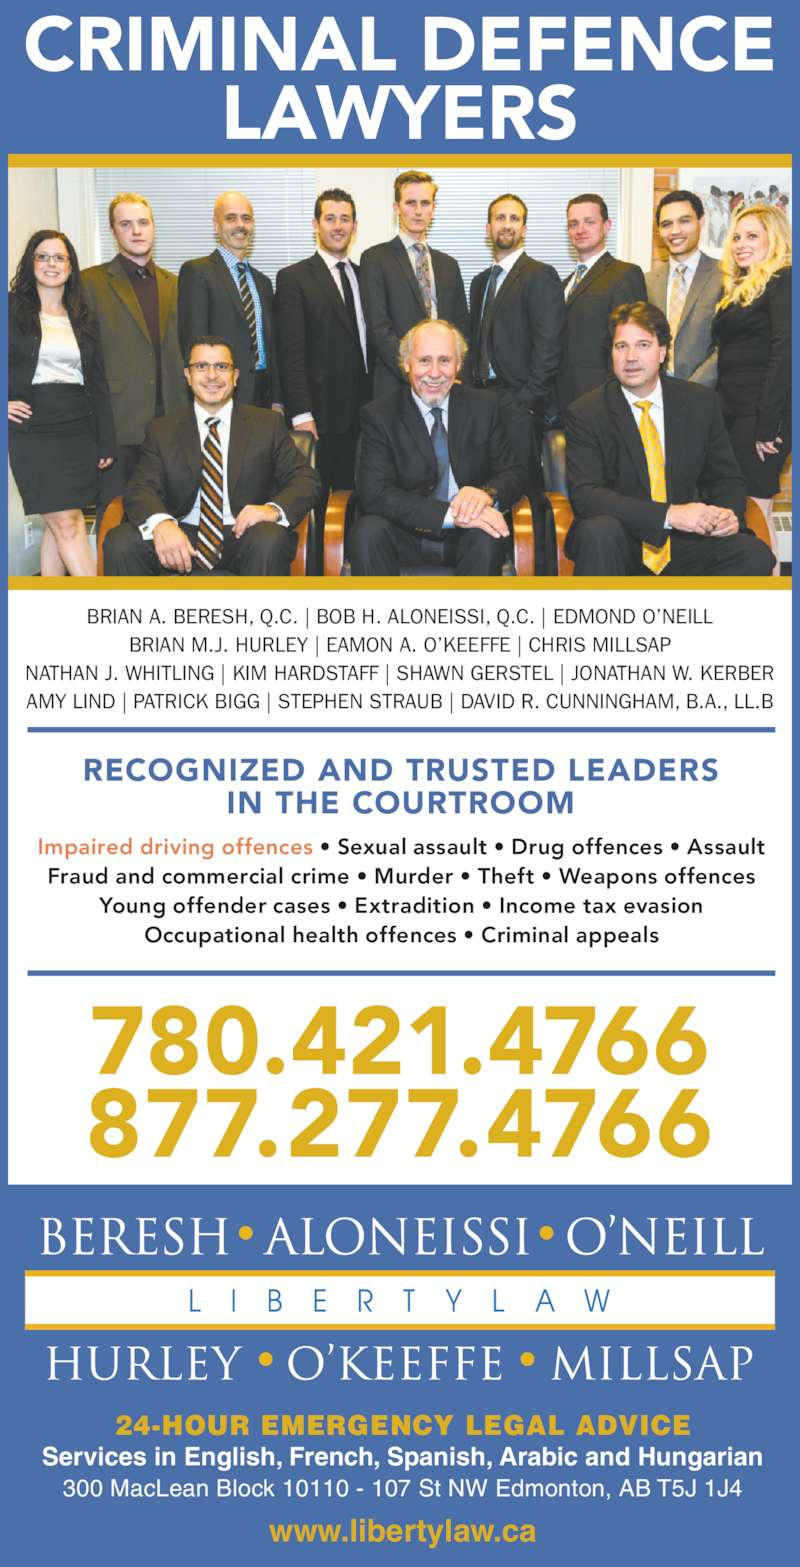 Beresh Aloneissi O'Neill Hurley O'Keeffe Millsap (780-421-4766) - Display Ad - www.libertylaw.ca 24-HOUR EMERGENCY LEGAL ADVICE Services in English, French, Spanish, Arabic and Hungarian 300 MacLean Block 10110 - 107 St NW Edmonton, AB T5J 1J4 780.421.4766 877.277.4766 CRIMINAL DEFENCE LAWYERS Impaired driving offences • Sexual assault • Drug offences • Assault Fraud and commercial crime • Murder • Theft • Weapons offences Young offender cases • Extradition • Income tax evasion Occupational health offences • Criminal appeals RECOGNIZED AND TRUSTED LEADERS IN THE COURTROOM BRIAN A. BERESH, Q.C. | BOB H. ALONEISSI, Q.C. | EDMOND O'NEILL BRIAN M.J. HURLEY | EAMON A. O'KEEFFE | CHRIS MILLSAP NATHAN J. WHITLING | KIM HARDSTAFF | SHAWN GERSTEL | JONATHAN W. KERBER AMY LIND | PATRICK BIGG | STEPHEN STRAUB | DAVID R. CUNNINGHAM, B.A., LL.B